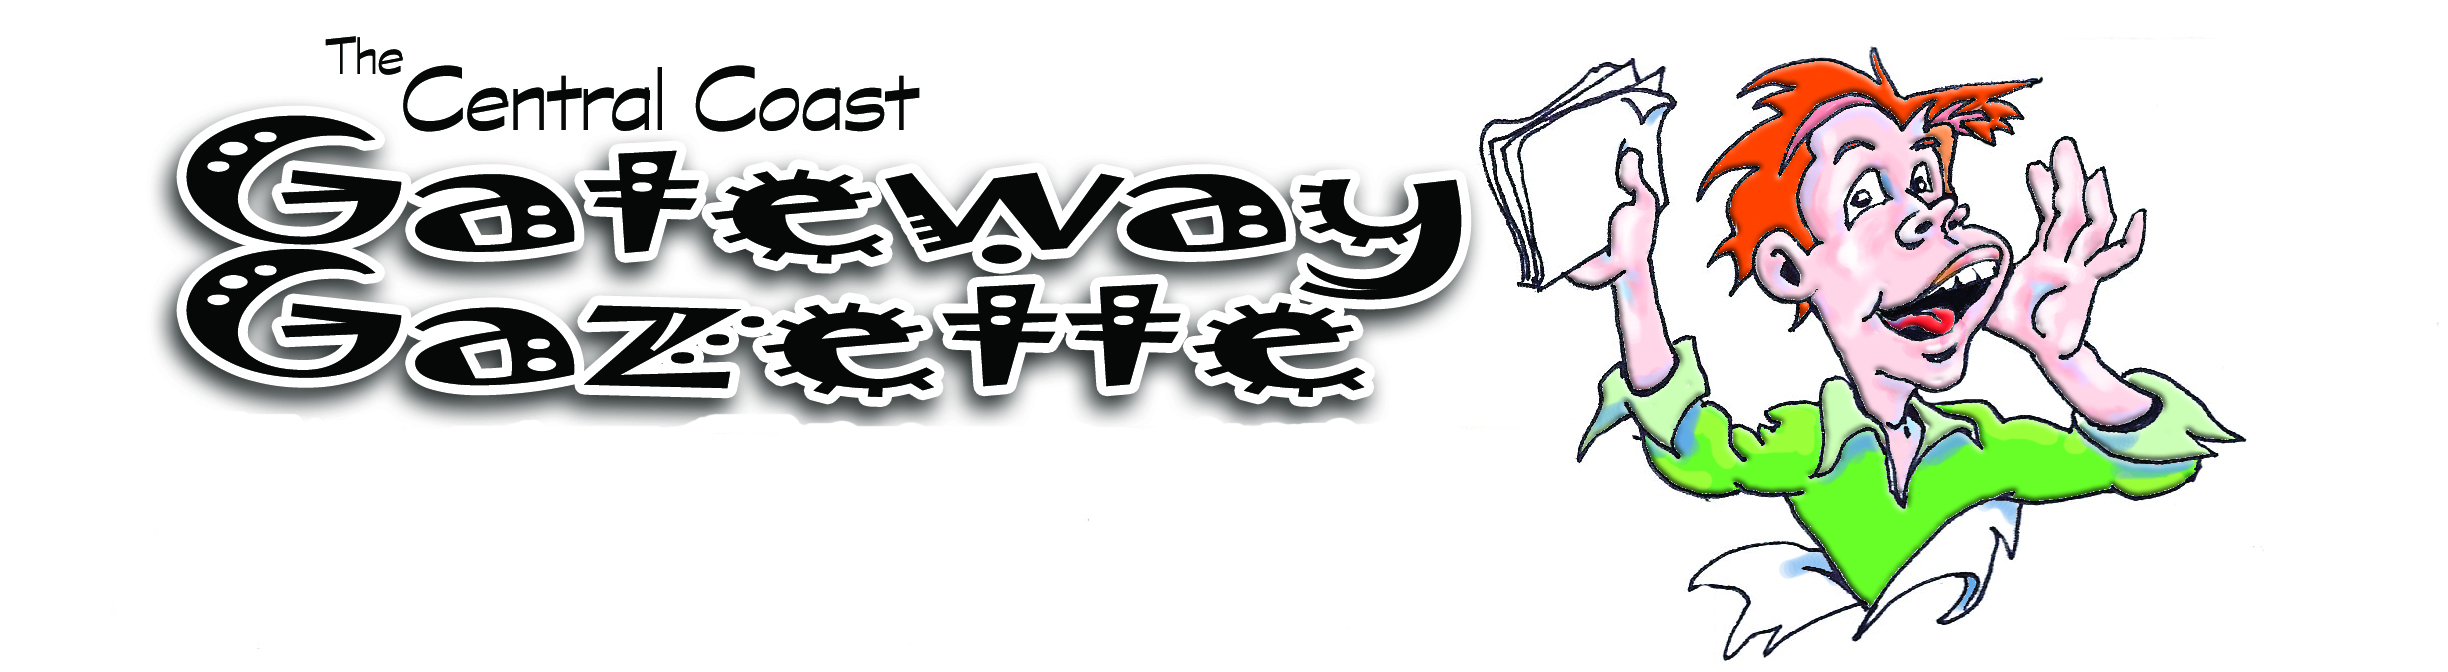 Gateway Gazette Logo w Boy